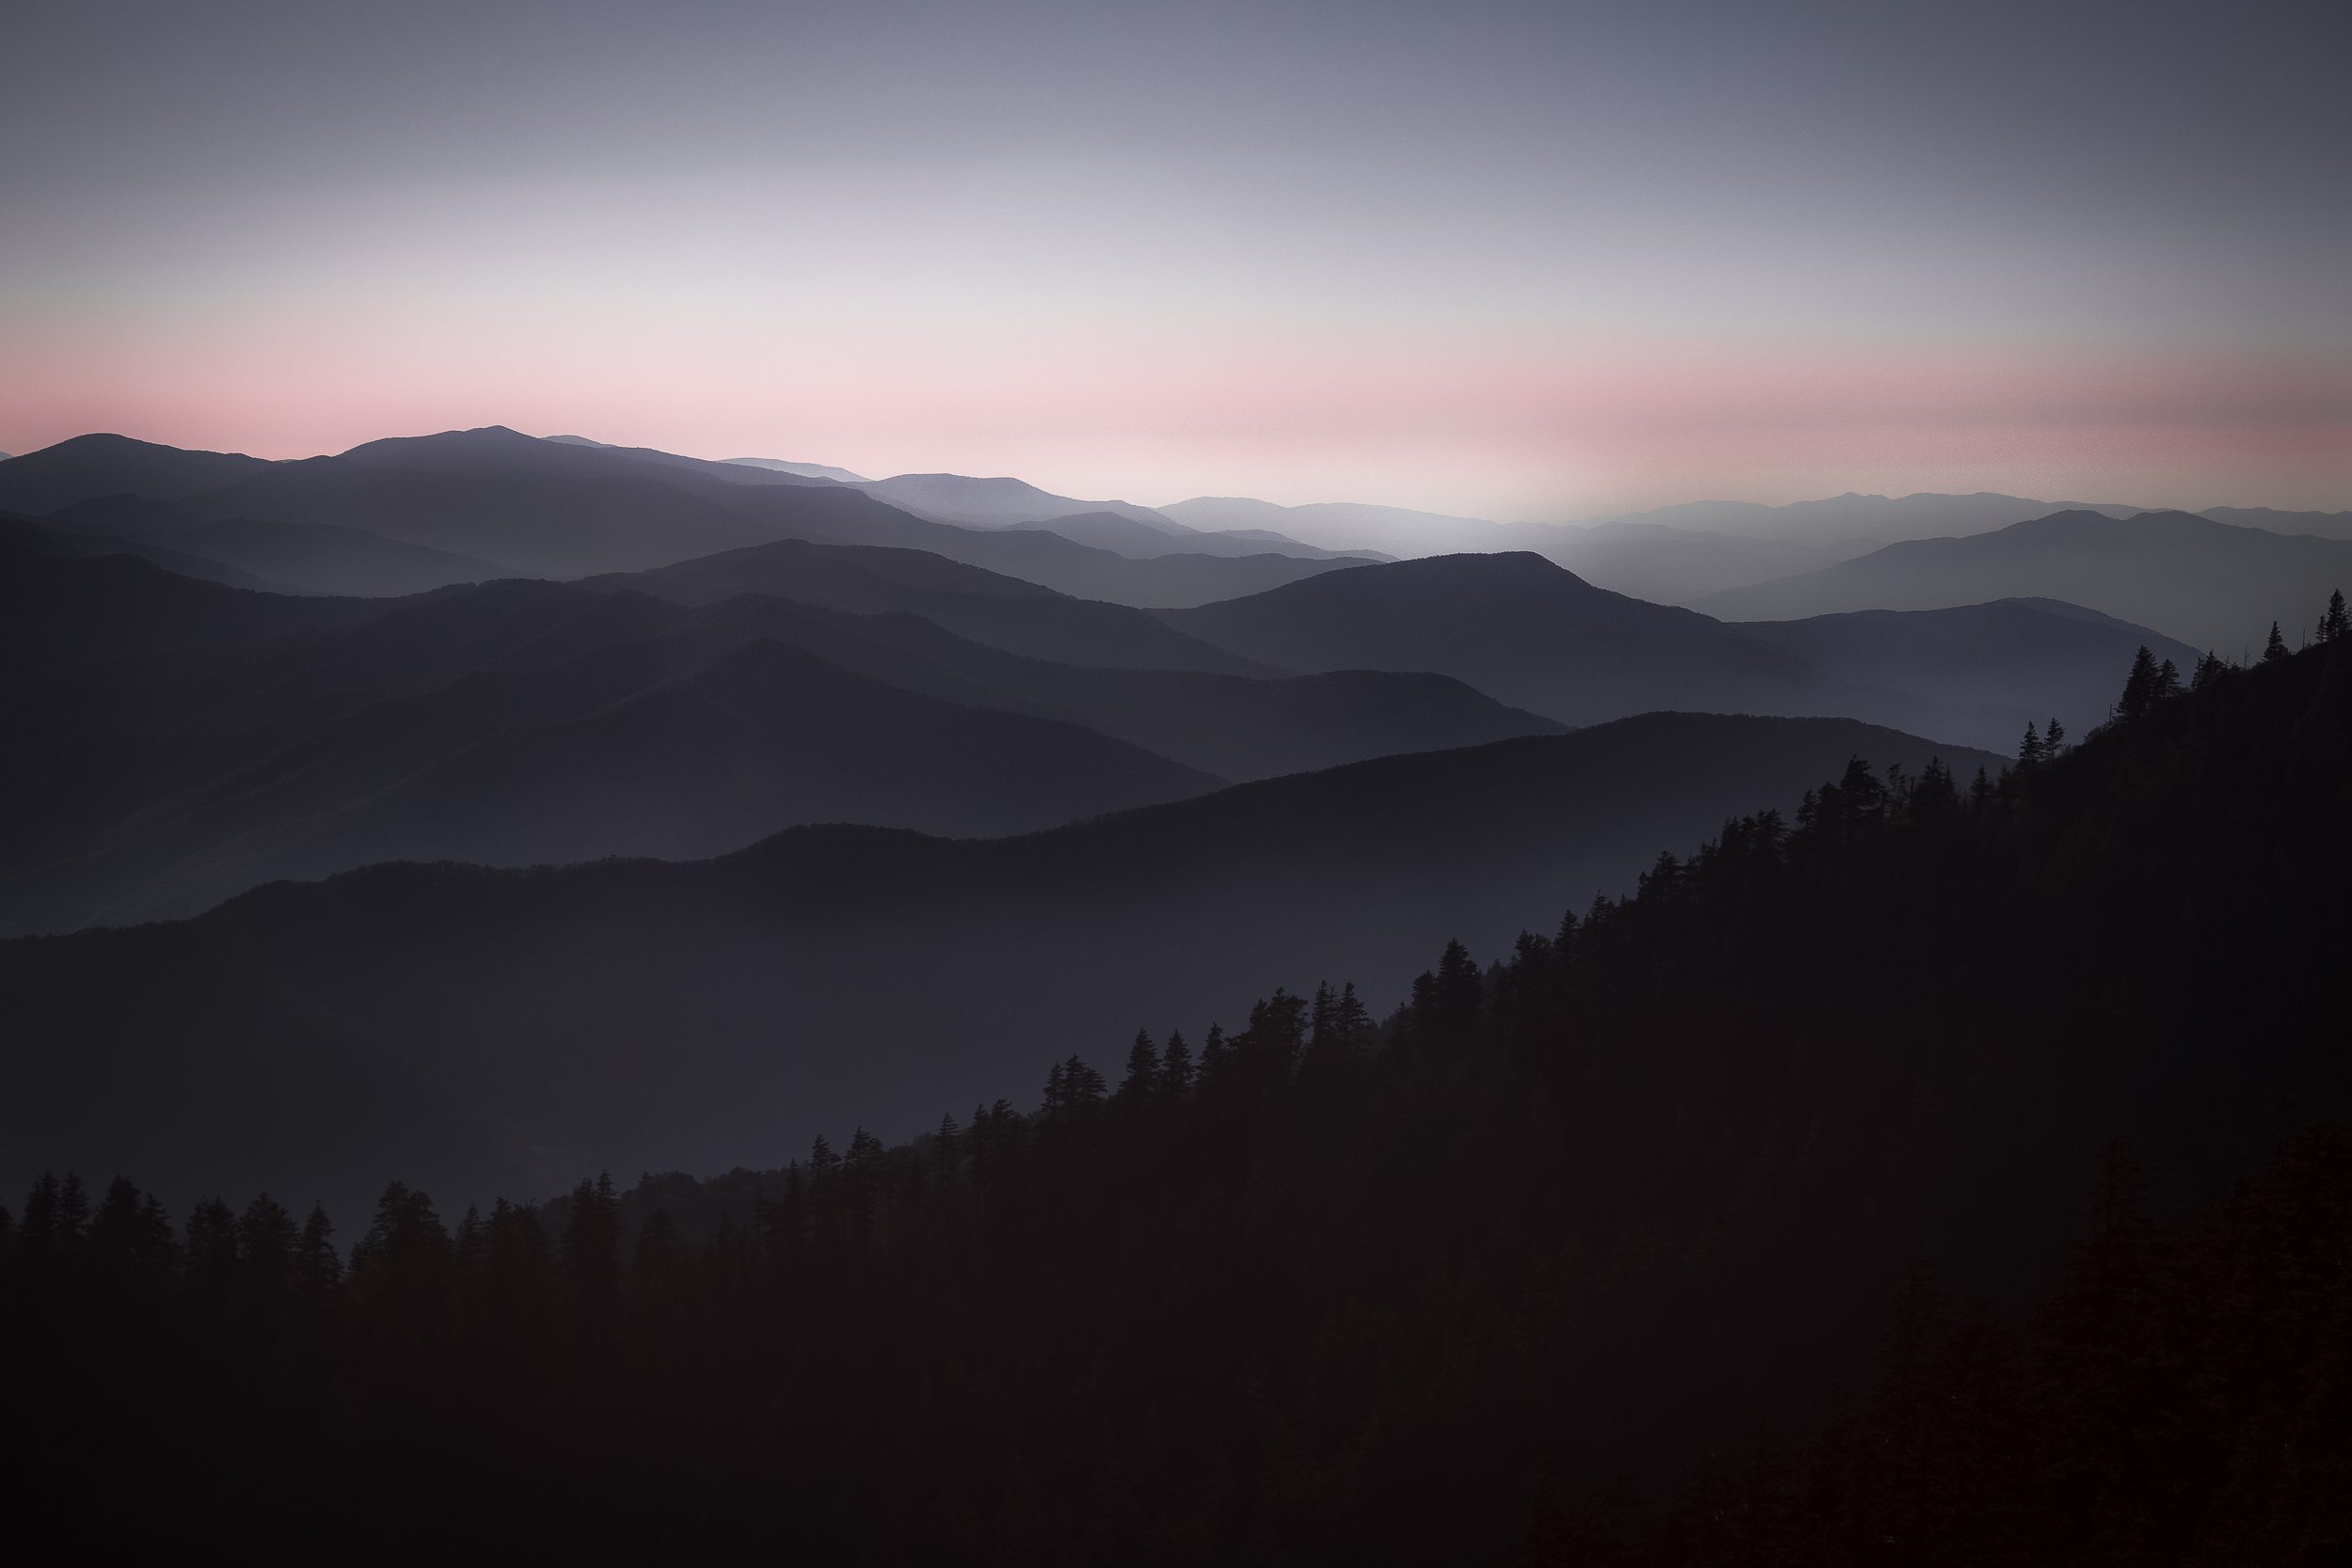 Mount LeConte Trail Overlook